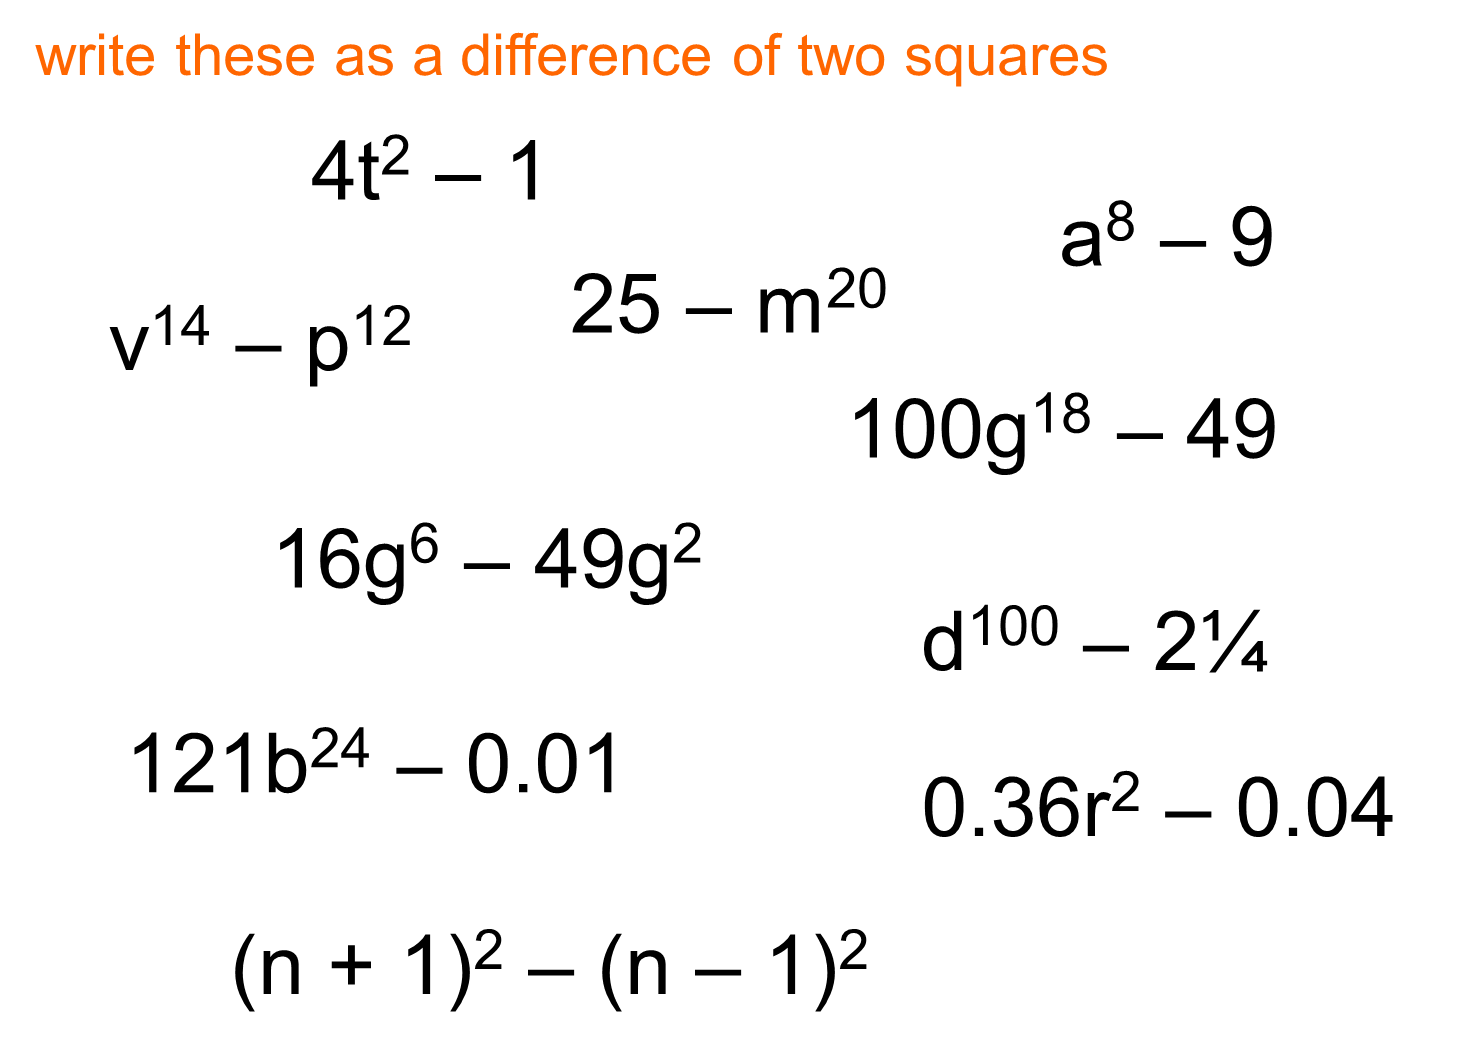 MEDIAN Don Steward mathematics teaching difference of two squares – Difference of Two Squares Worksheet